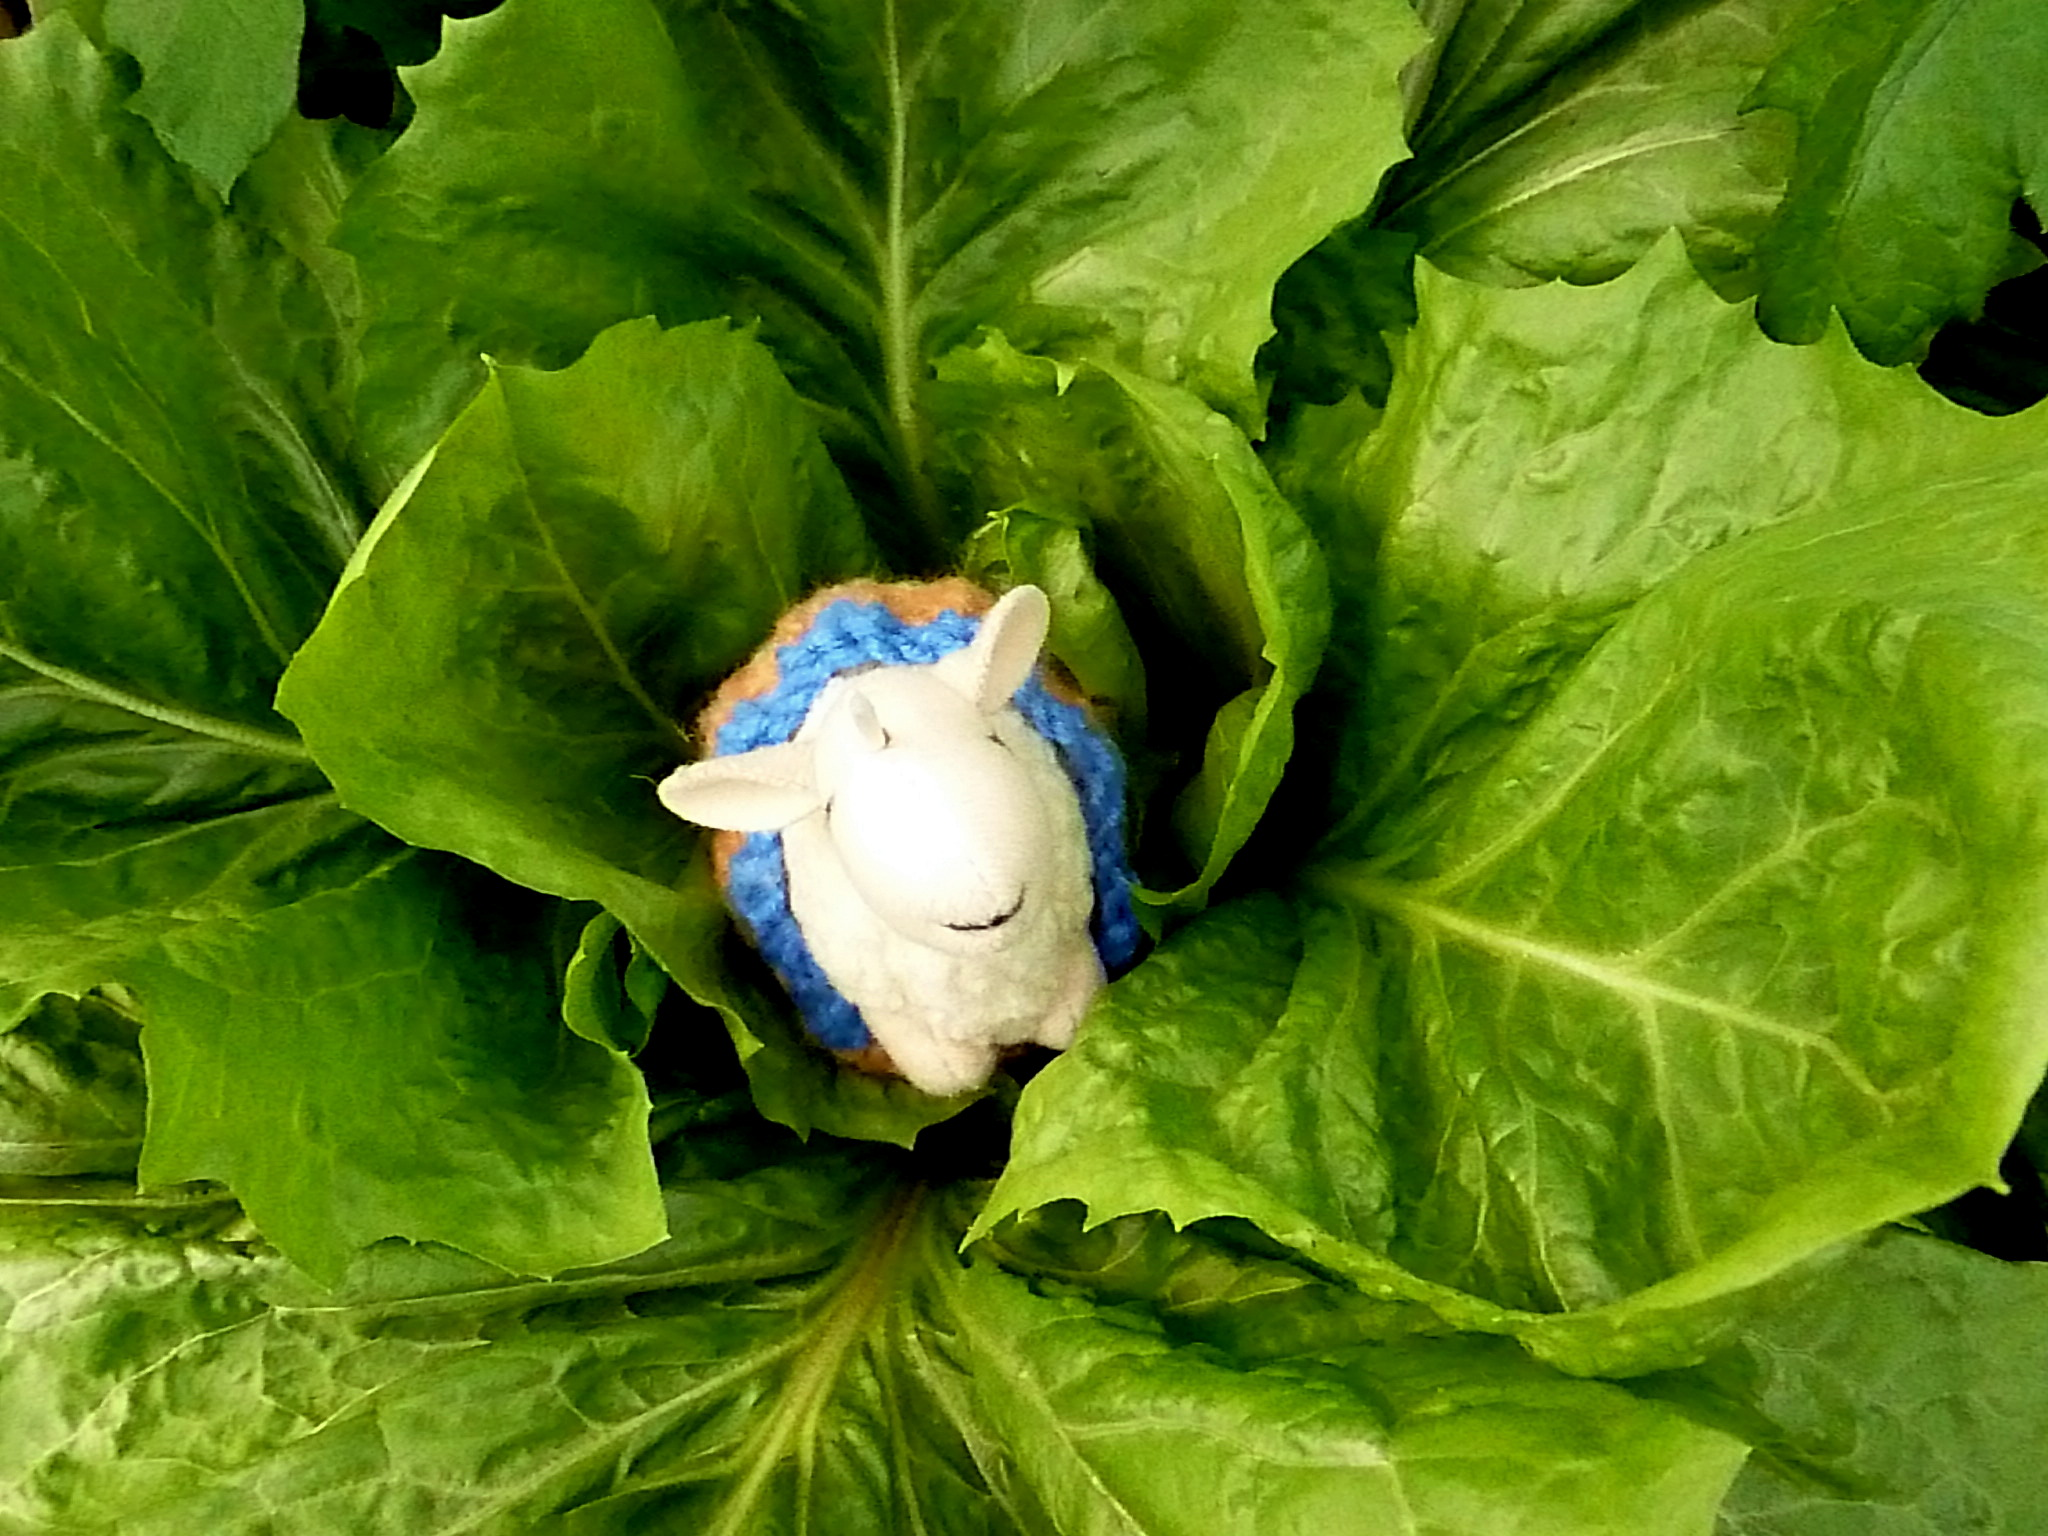 Rutherford likes to eat lettuce, and he found some very large heads of it at the Sielings'.